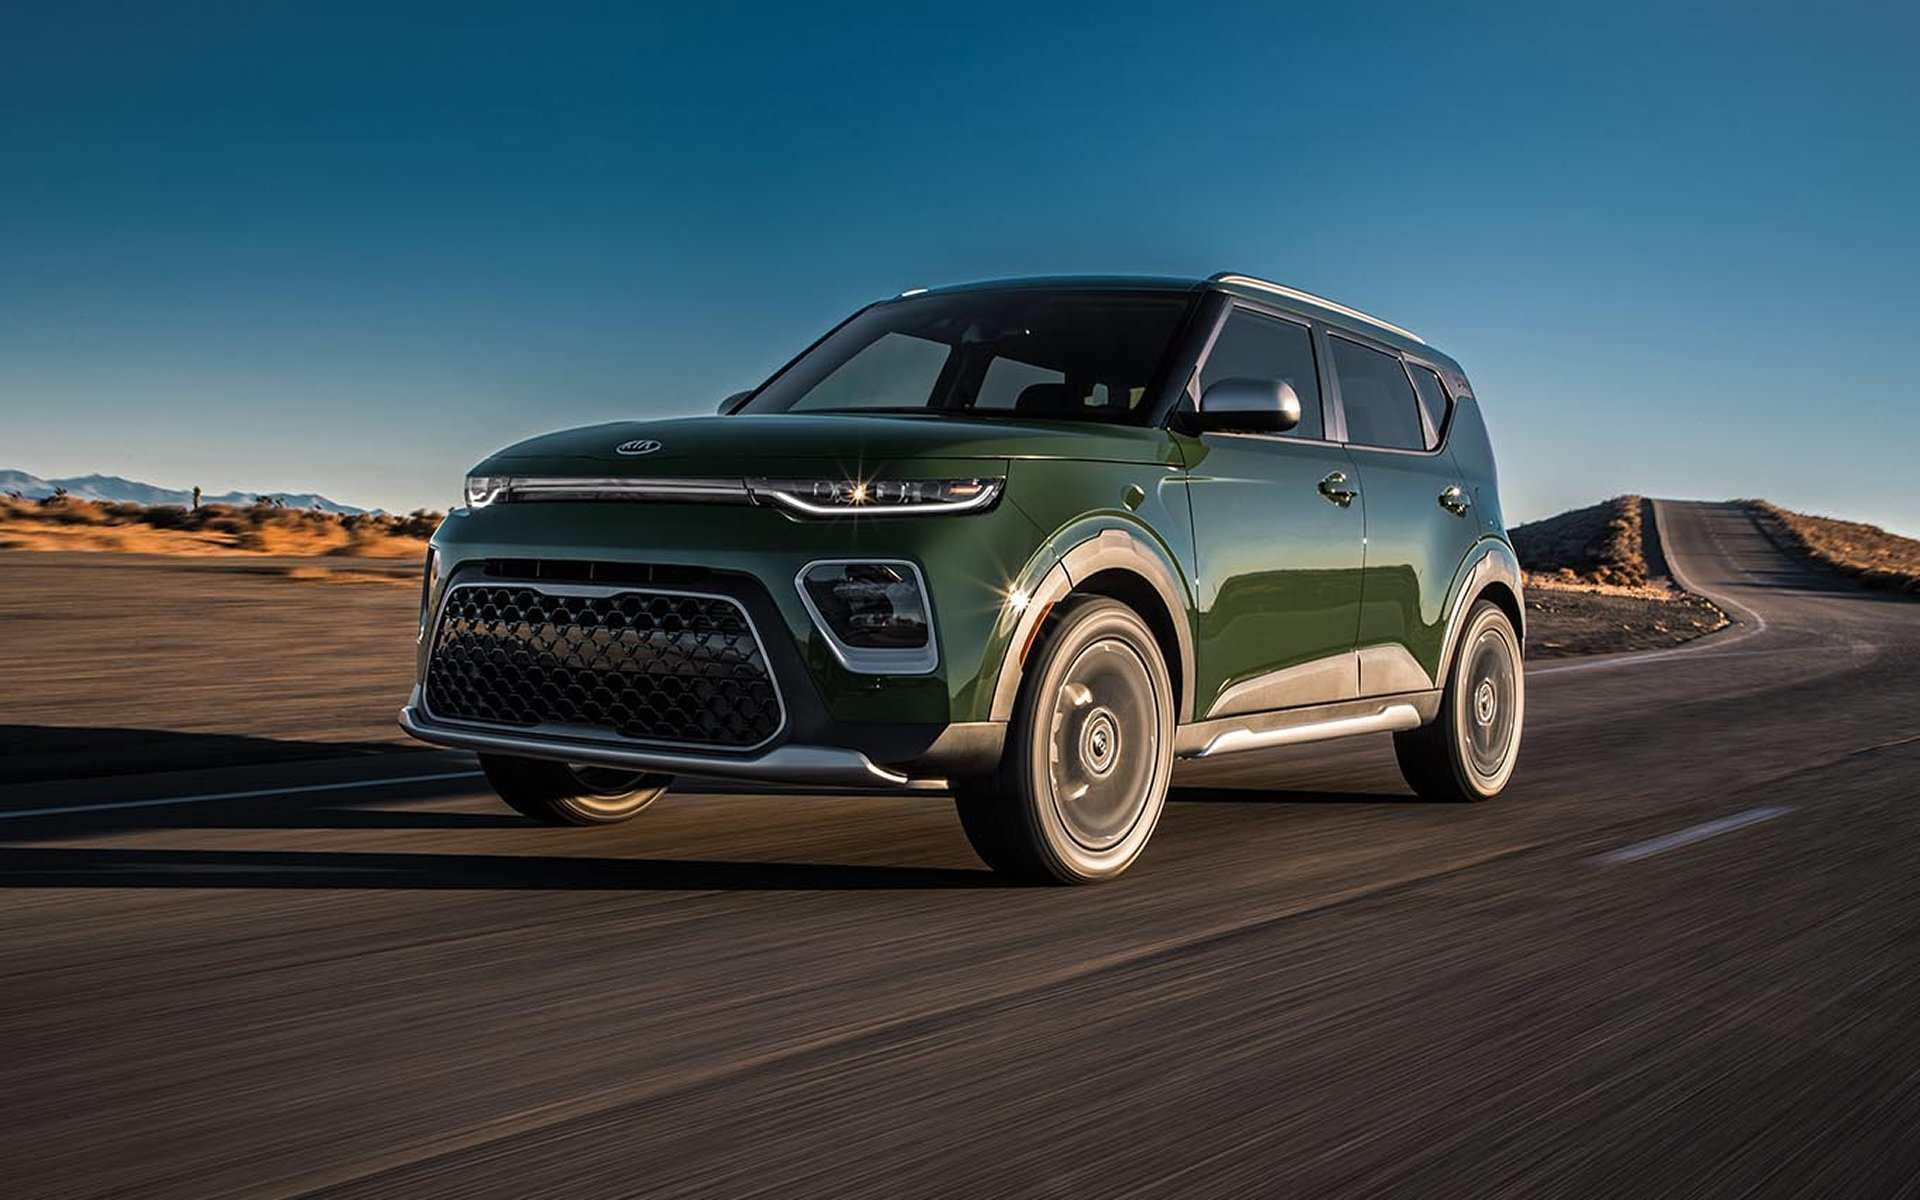 54 All New When Is The 2020 Kia Soul Coming Out Spesification for When Is The 2020 Kia Soul Coming Out